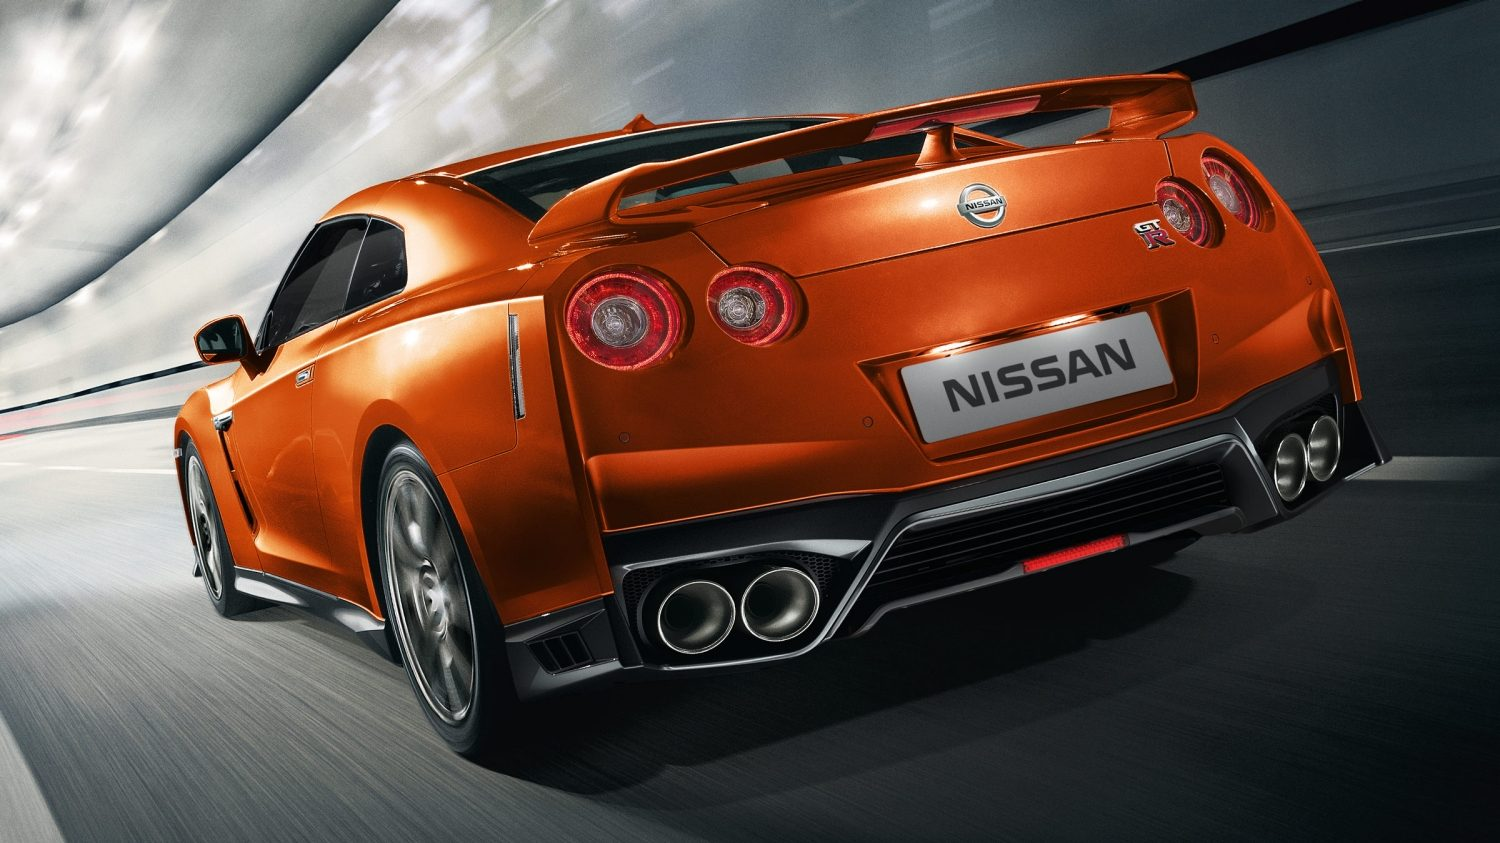 new nissan gt r our legendary supercar nissan. Black Bedroom Furniture Sets. Home Design Ideas